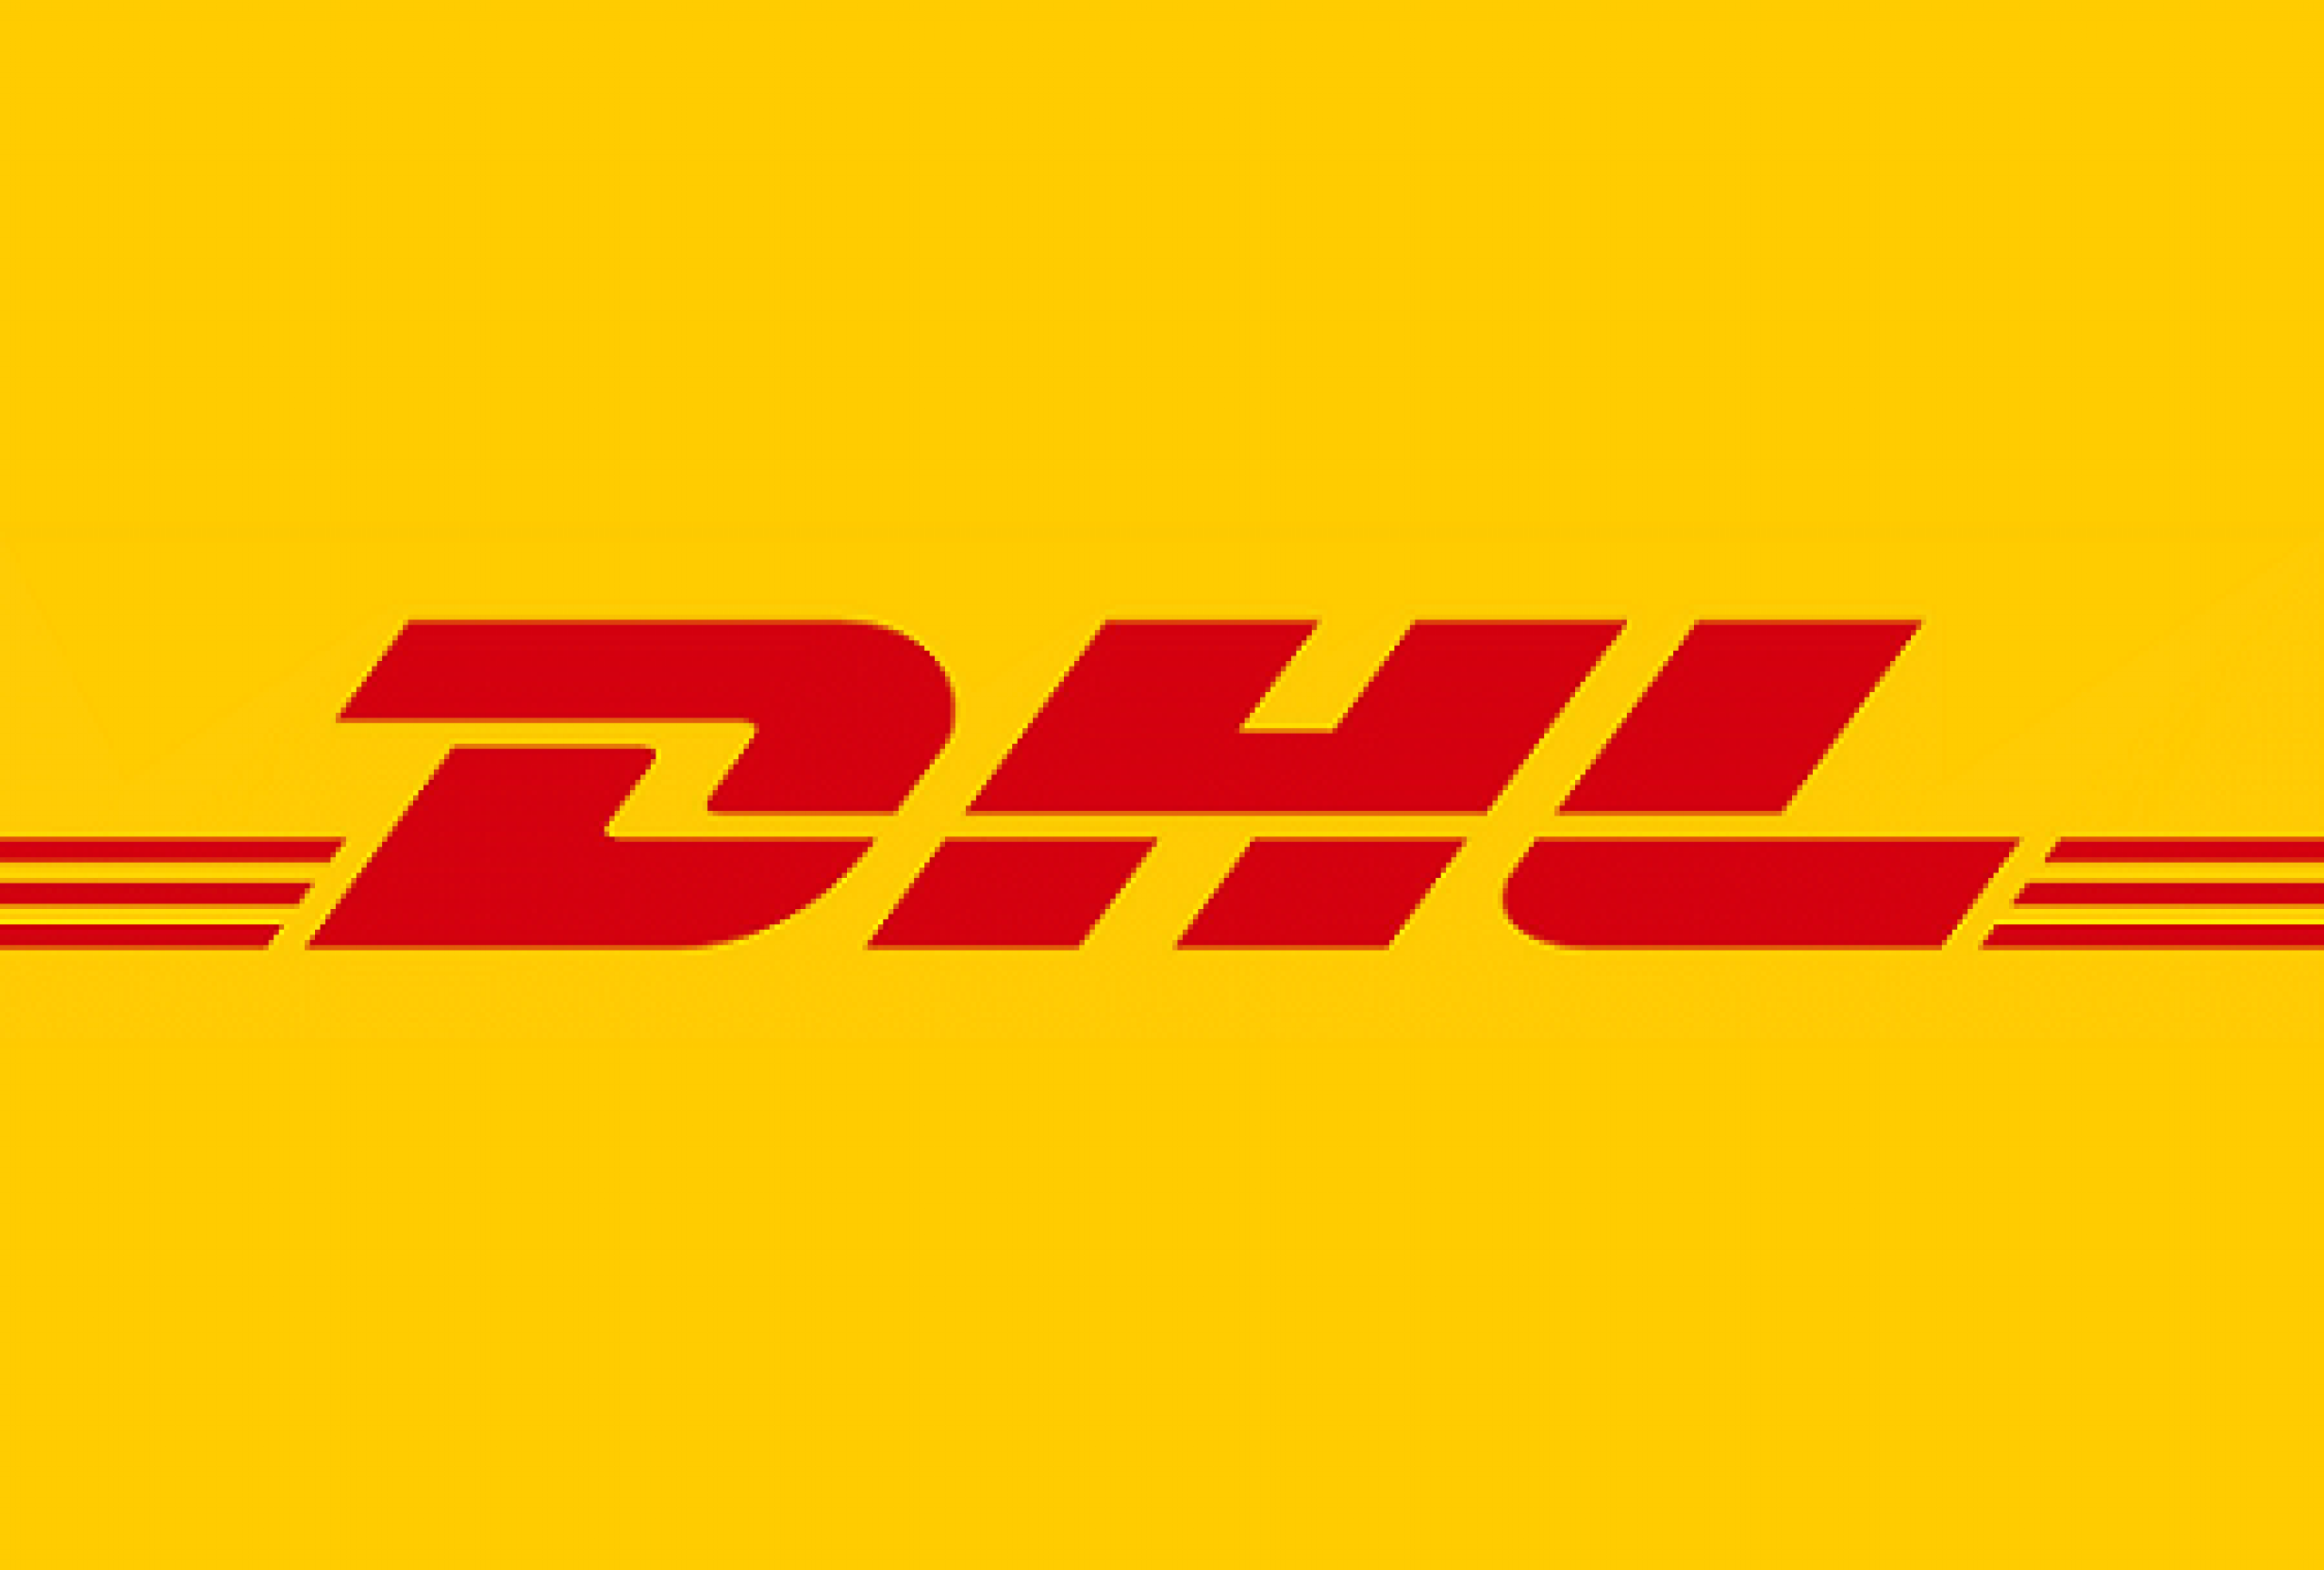 DHL Logo Wallpaper